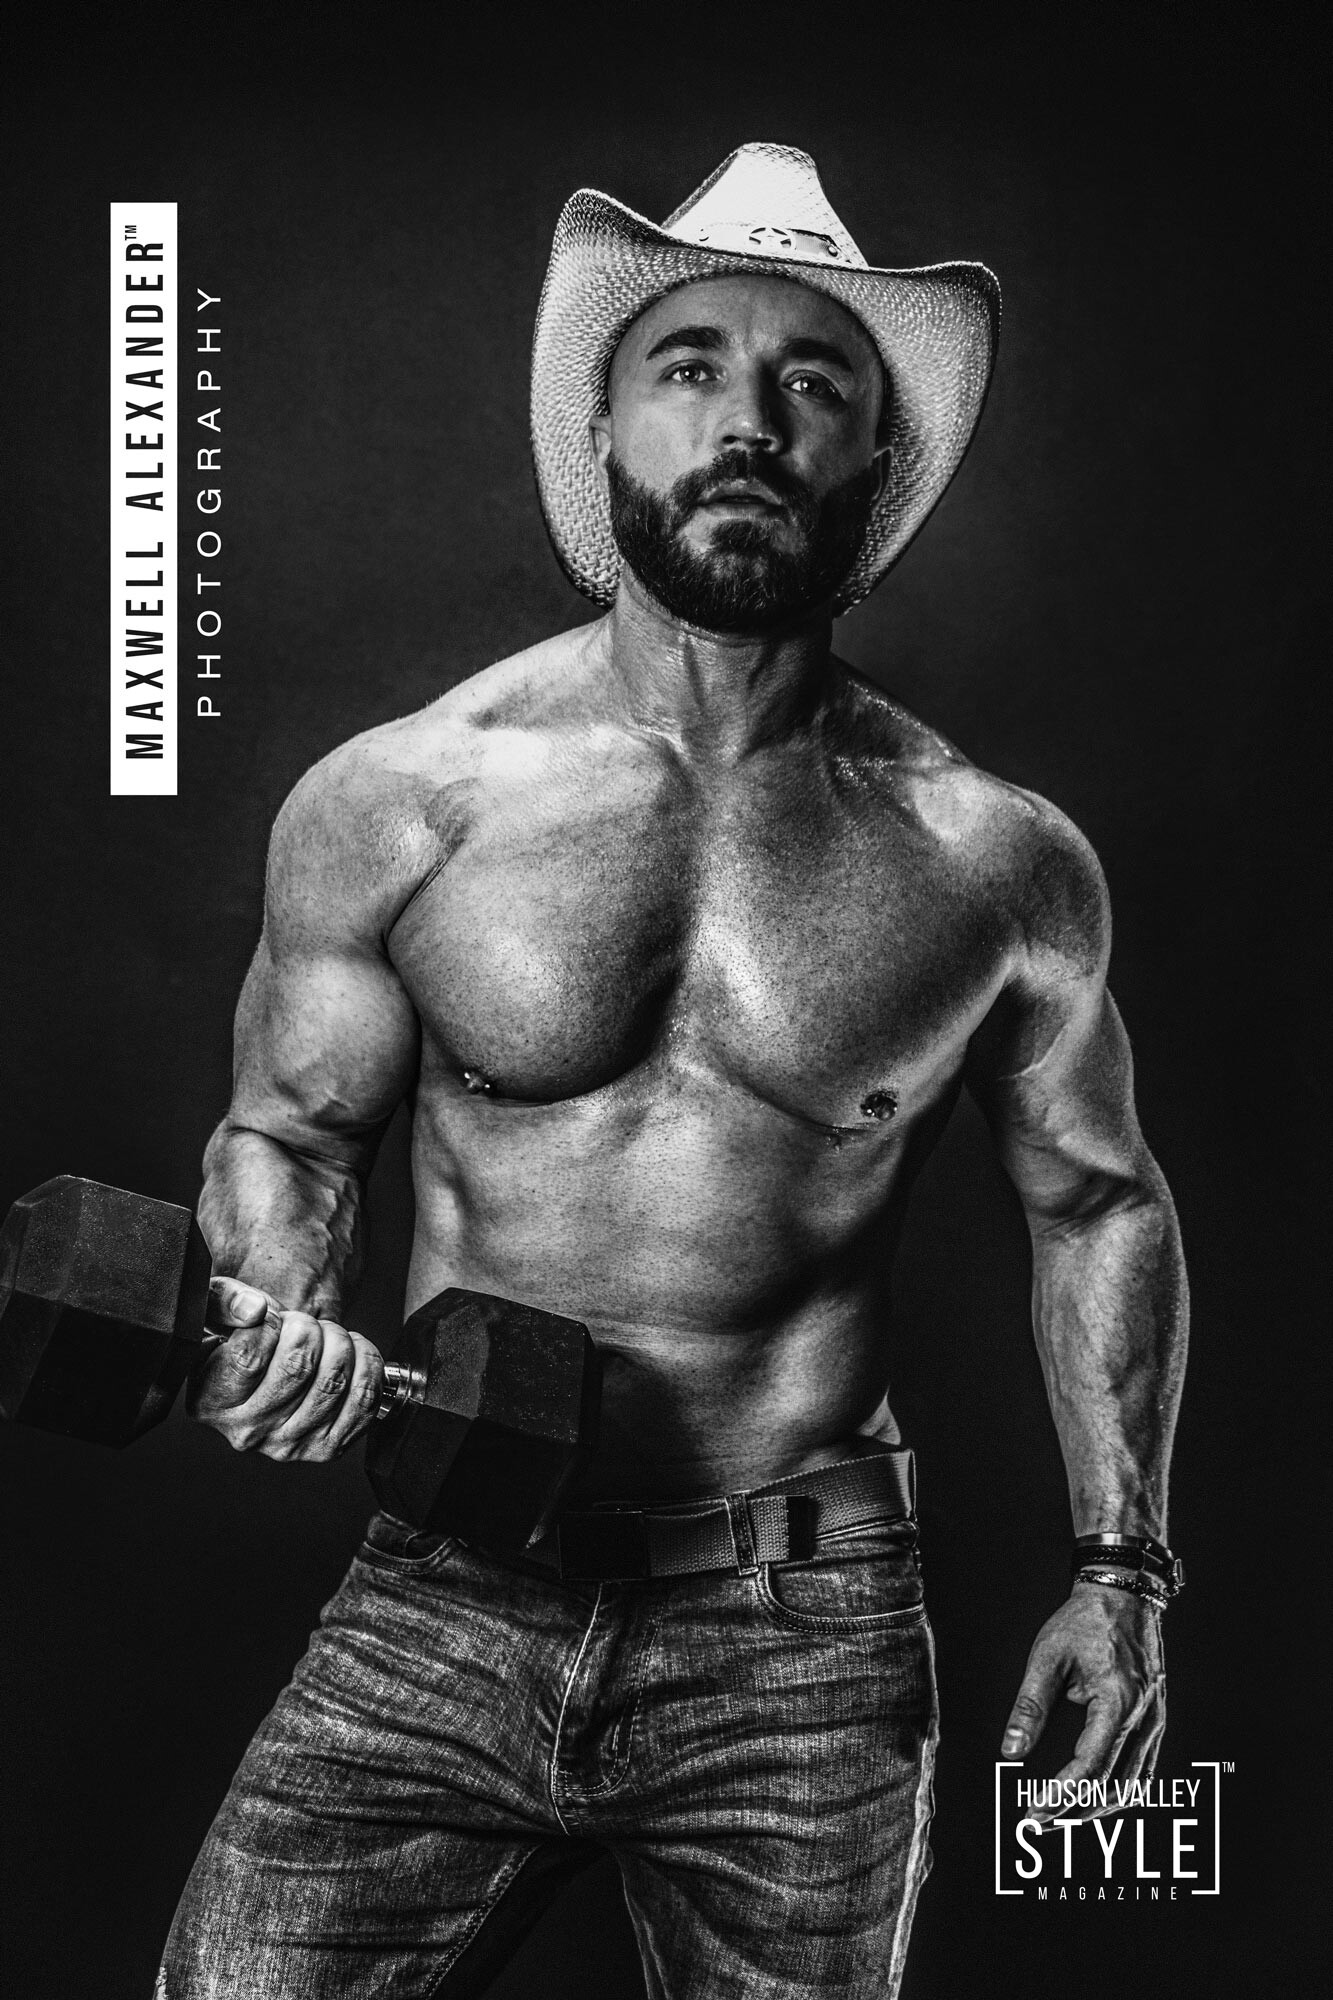 Top 15 Tips on getting into Bodybuilding – Fitness Motivation with Coach Maxwell Alexander